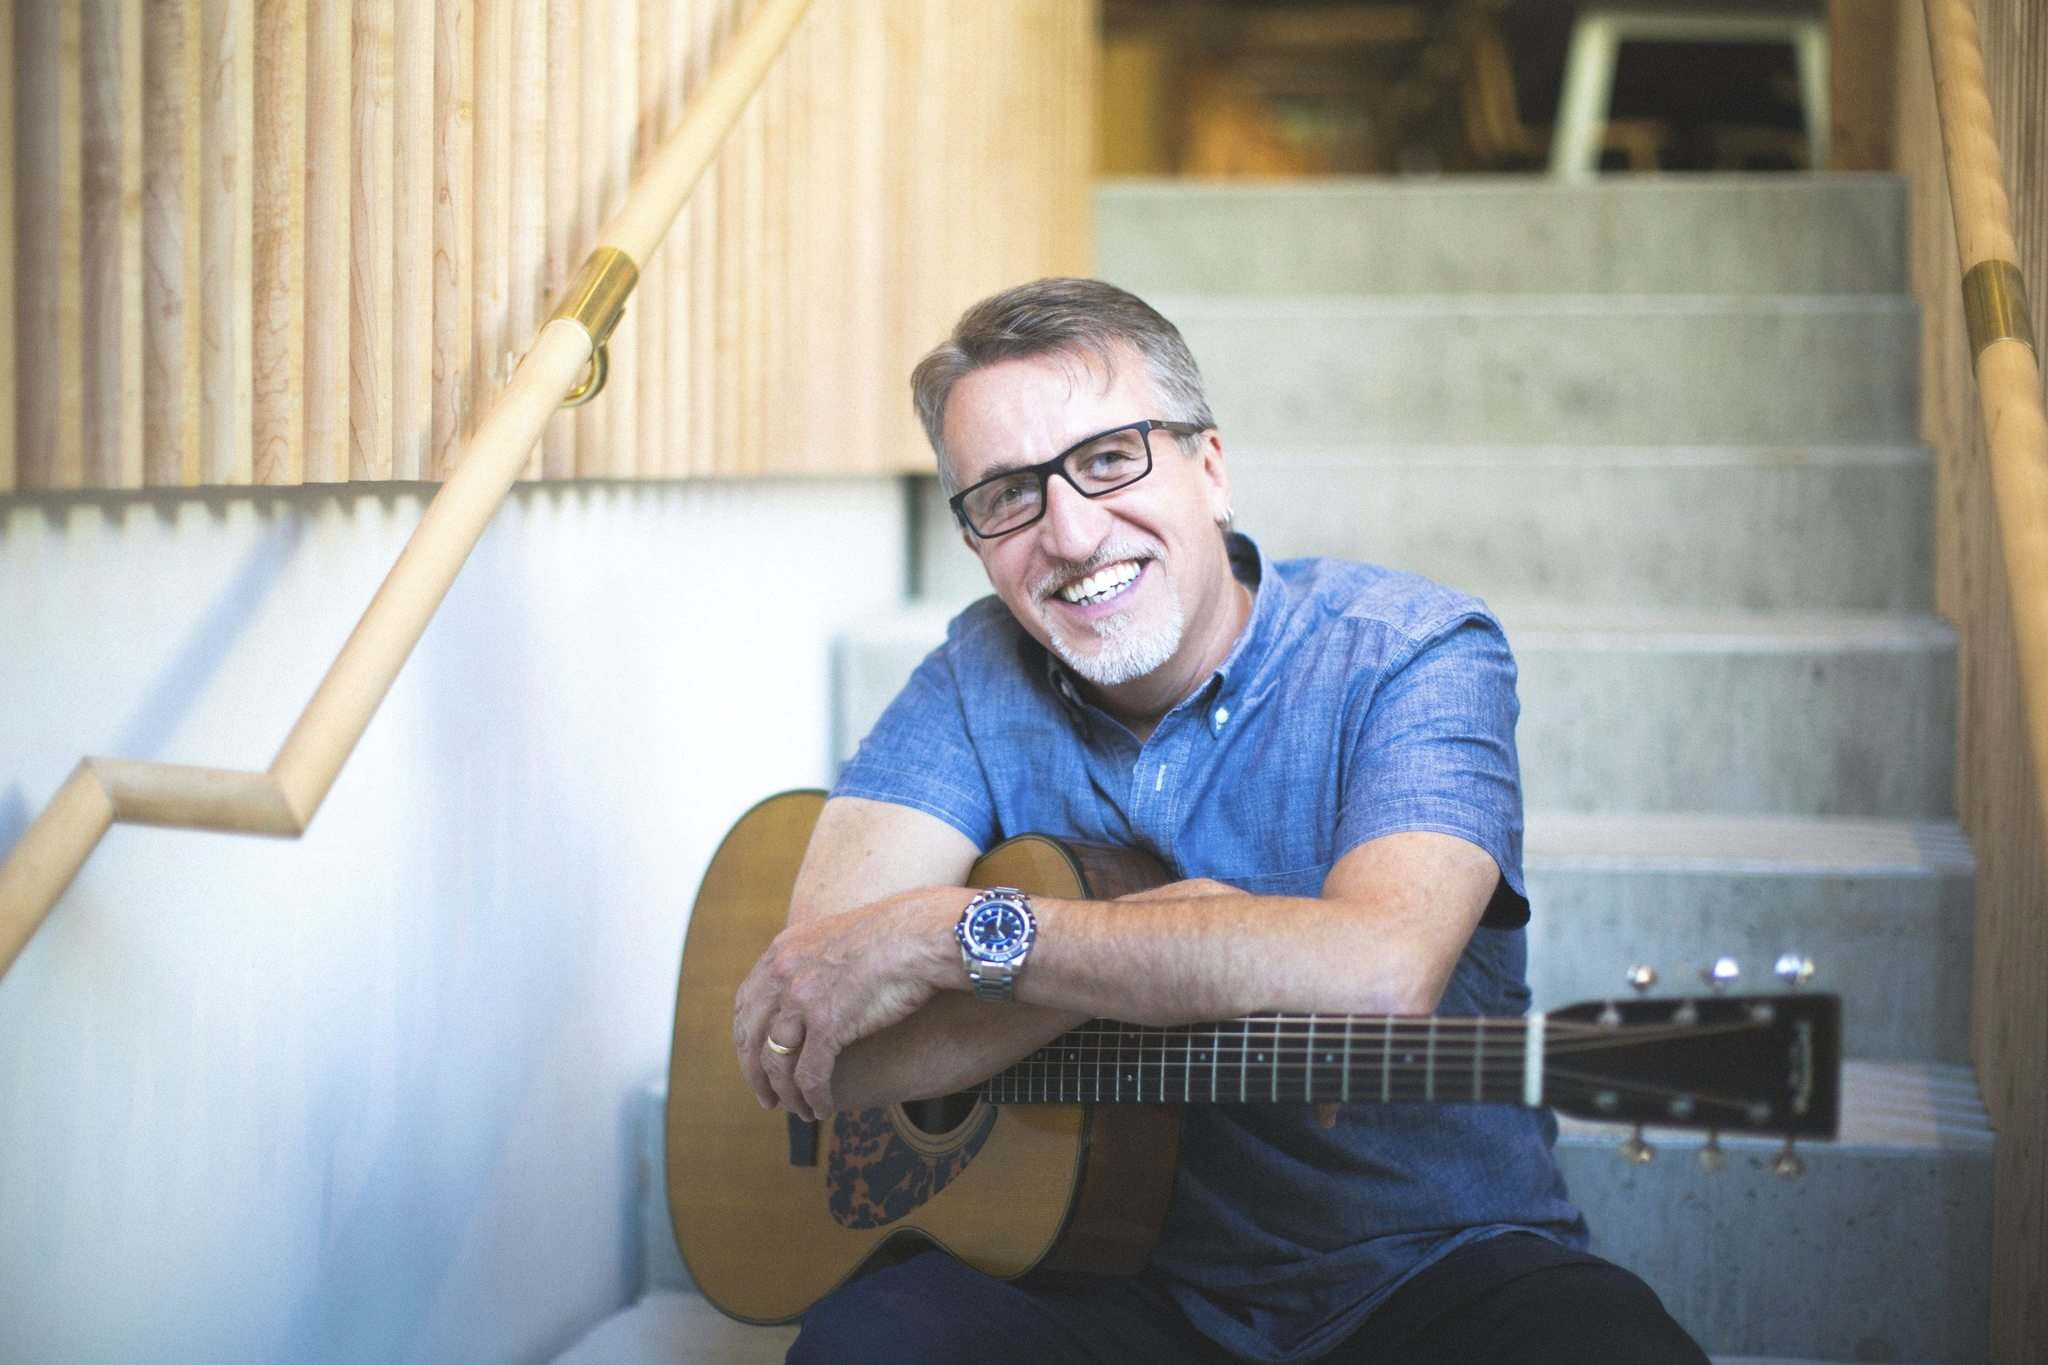 SUPPLIED</p><p>Steve Bell will perform at Grant Memorial Church on Nov. 26 as part of his Canadian tour.</p>